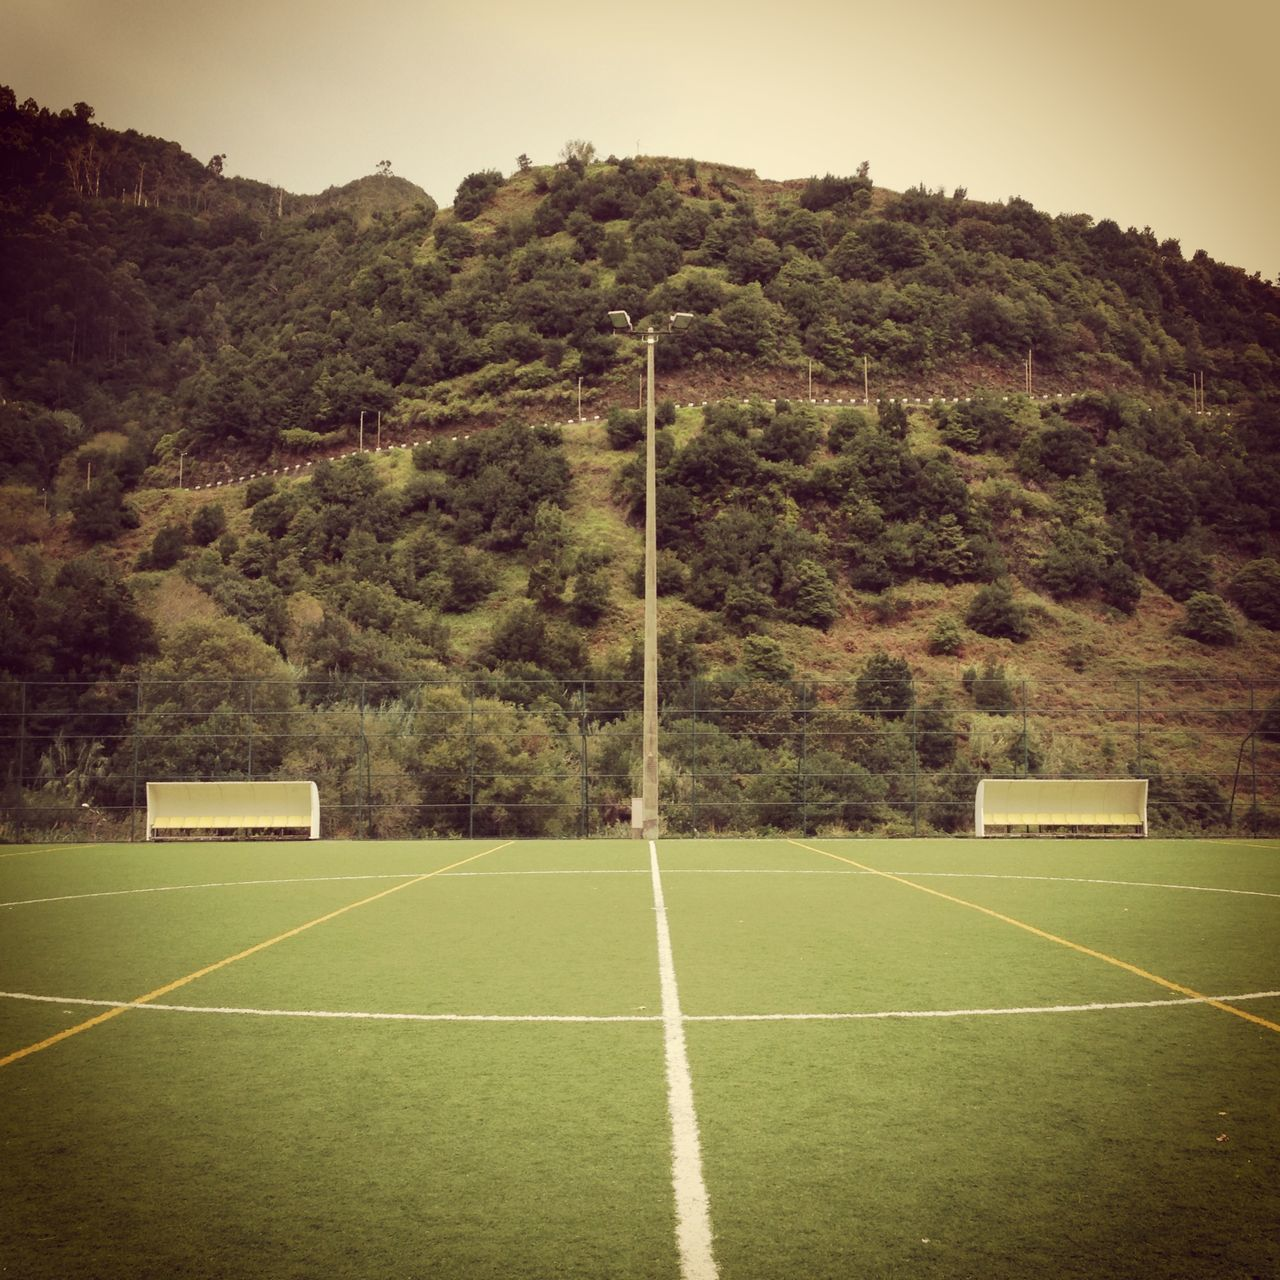 Day Football Footballfield Grass Green Color Madeira Nature No People Outdoors Pitch Playground Playgrounds Sky Soccer Soccer Field Sport Tree